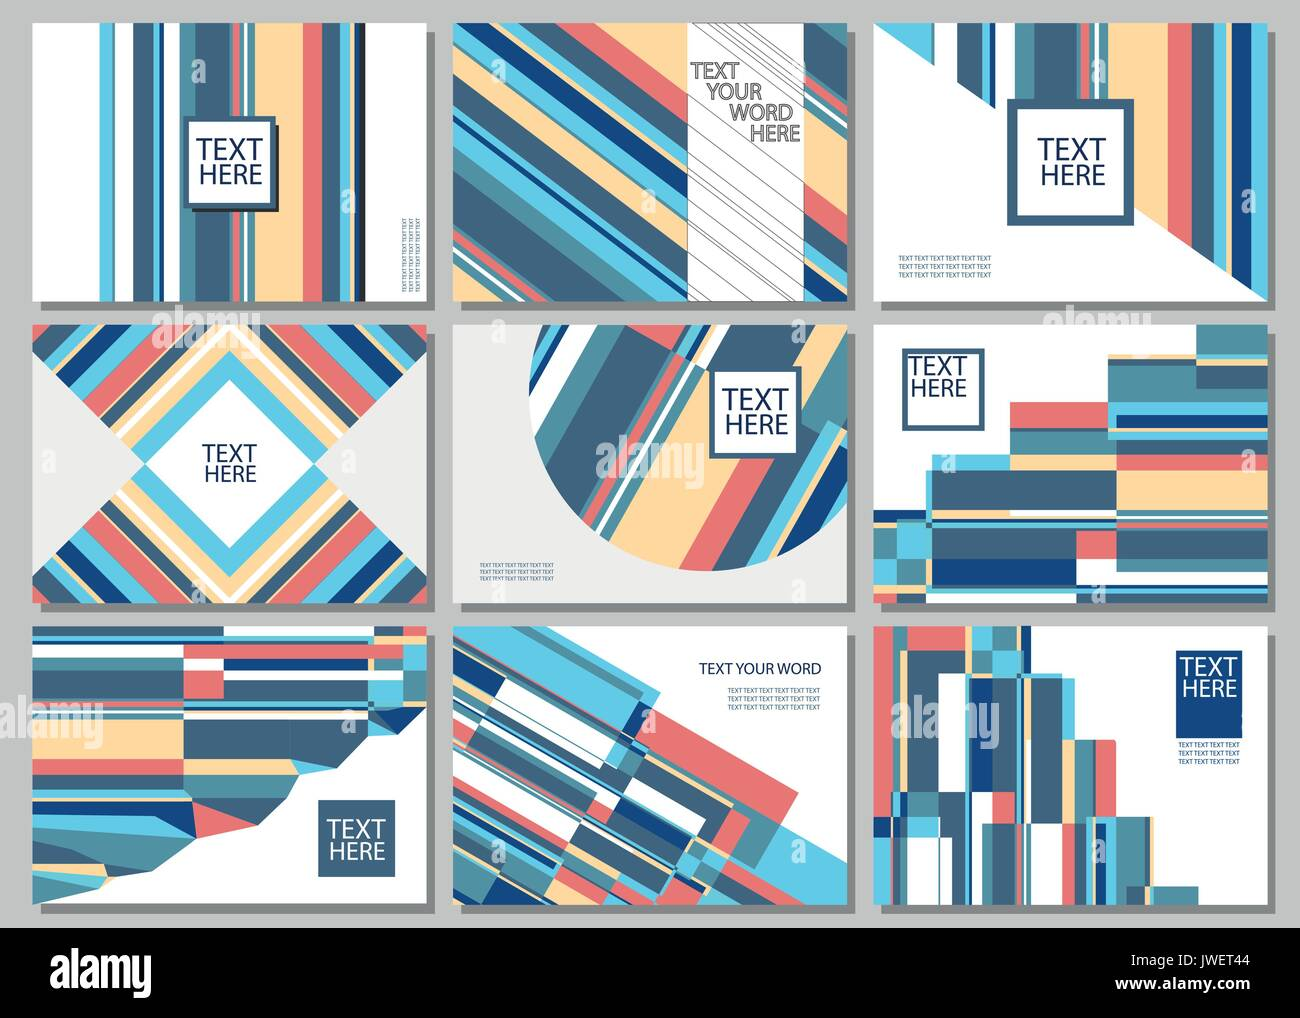 Set Of 9 Simple Geometric Graphic Covers Design Smart